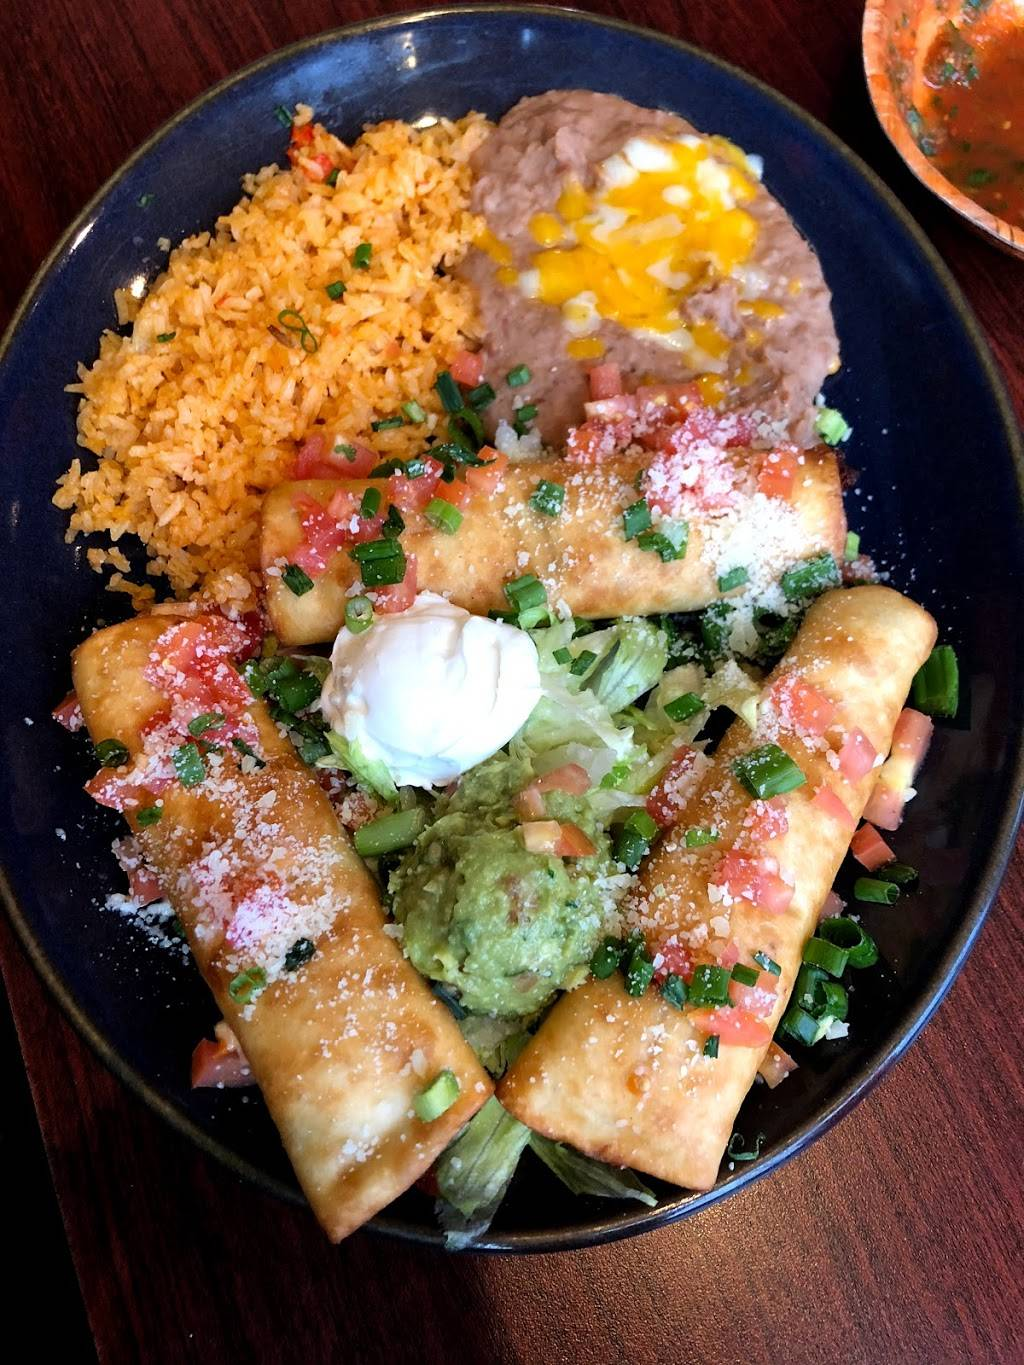 Fiesta Acapulco Mexican Grill | restaurant | 5686 Dressler Rd NW, North Canton, OH 44720, USA | 3305268379 OR +1 330-526-8379